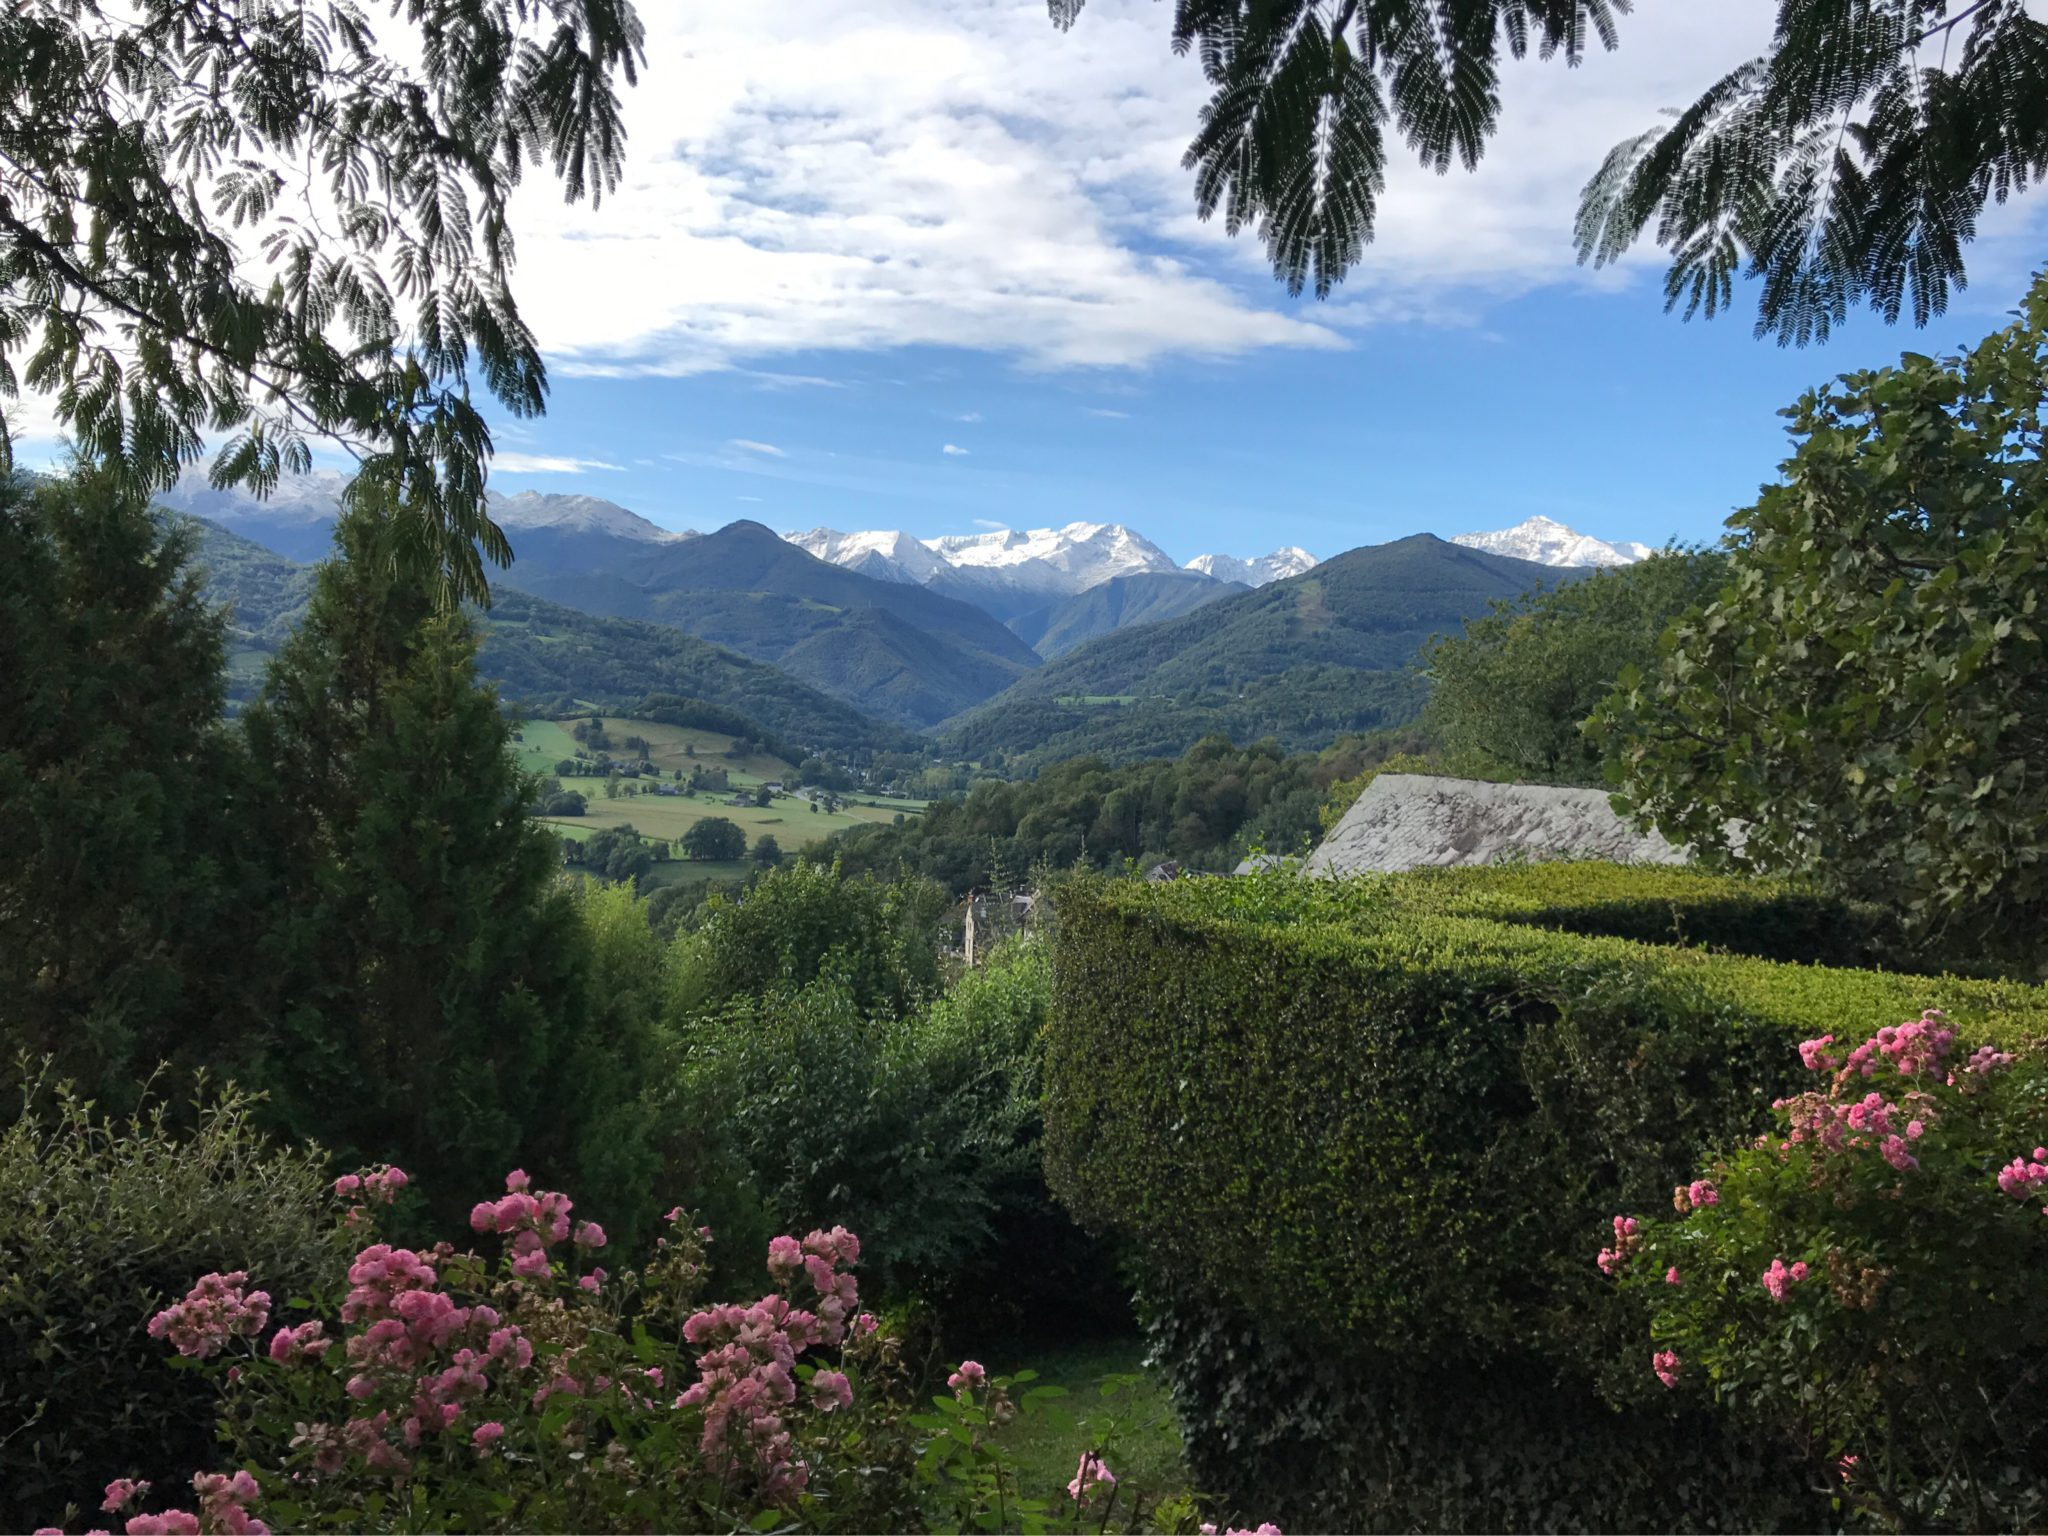 Pyrenees_at_Looking_south_from_Arrout_in_Ariège_17_Sept_2017.jpg